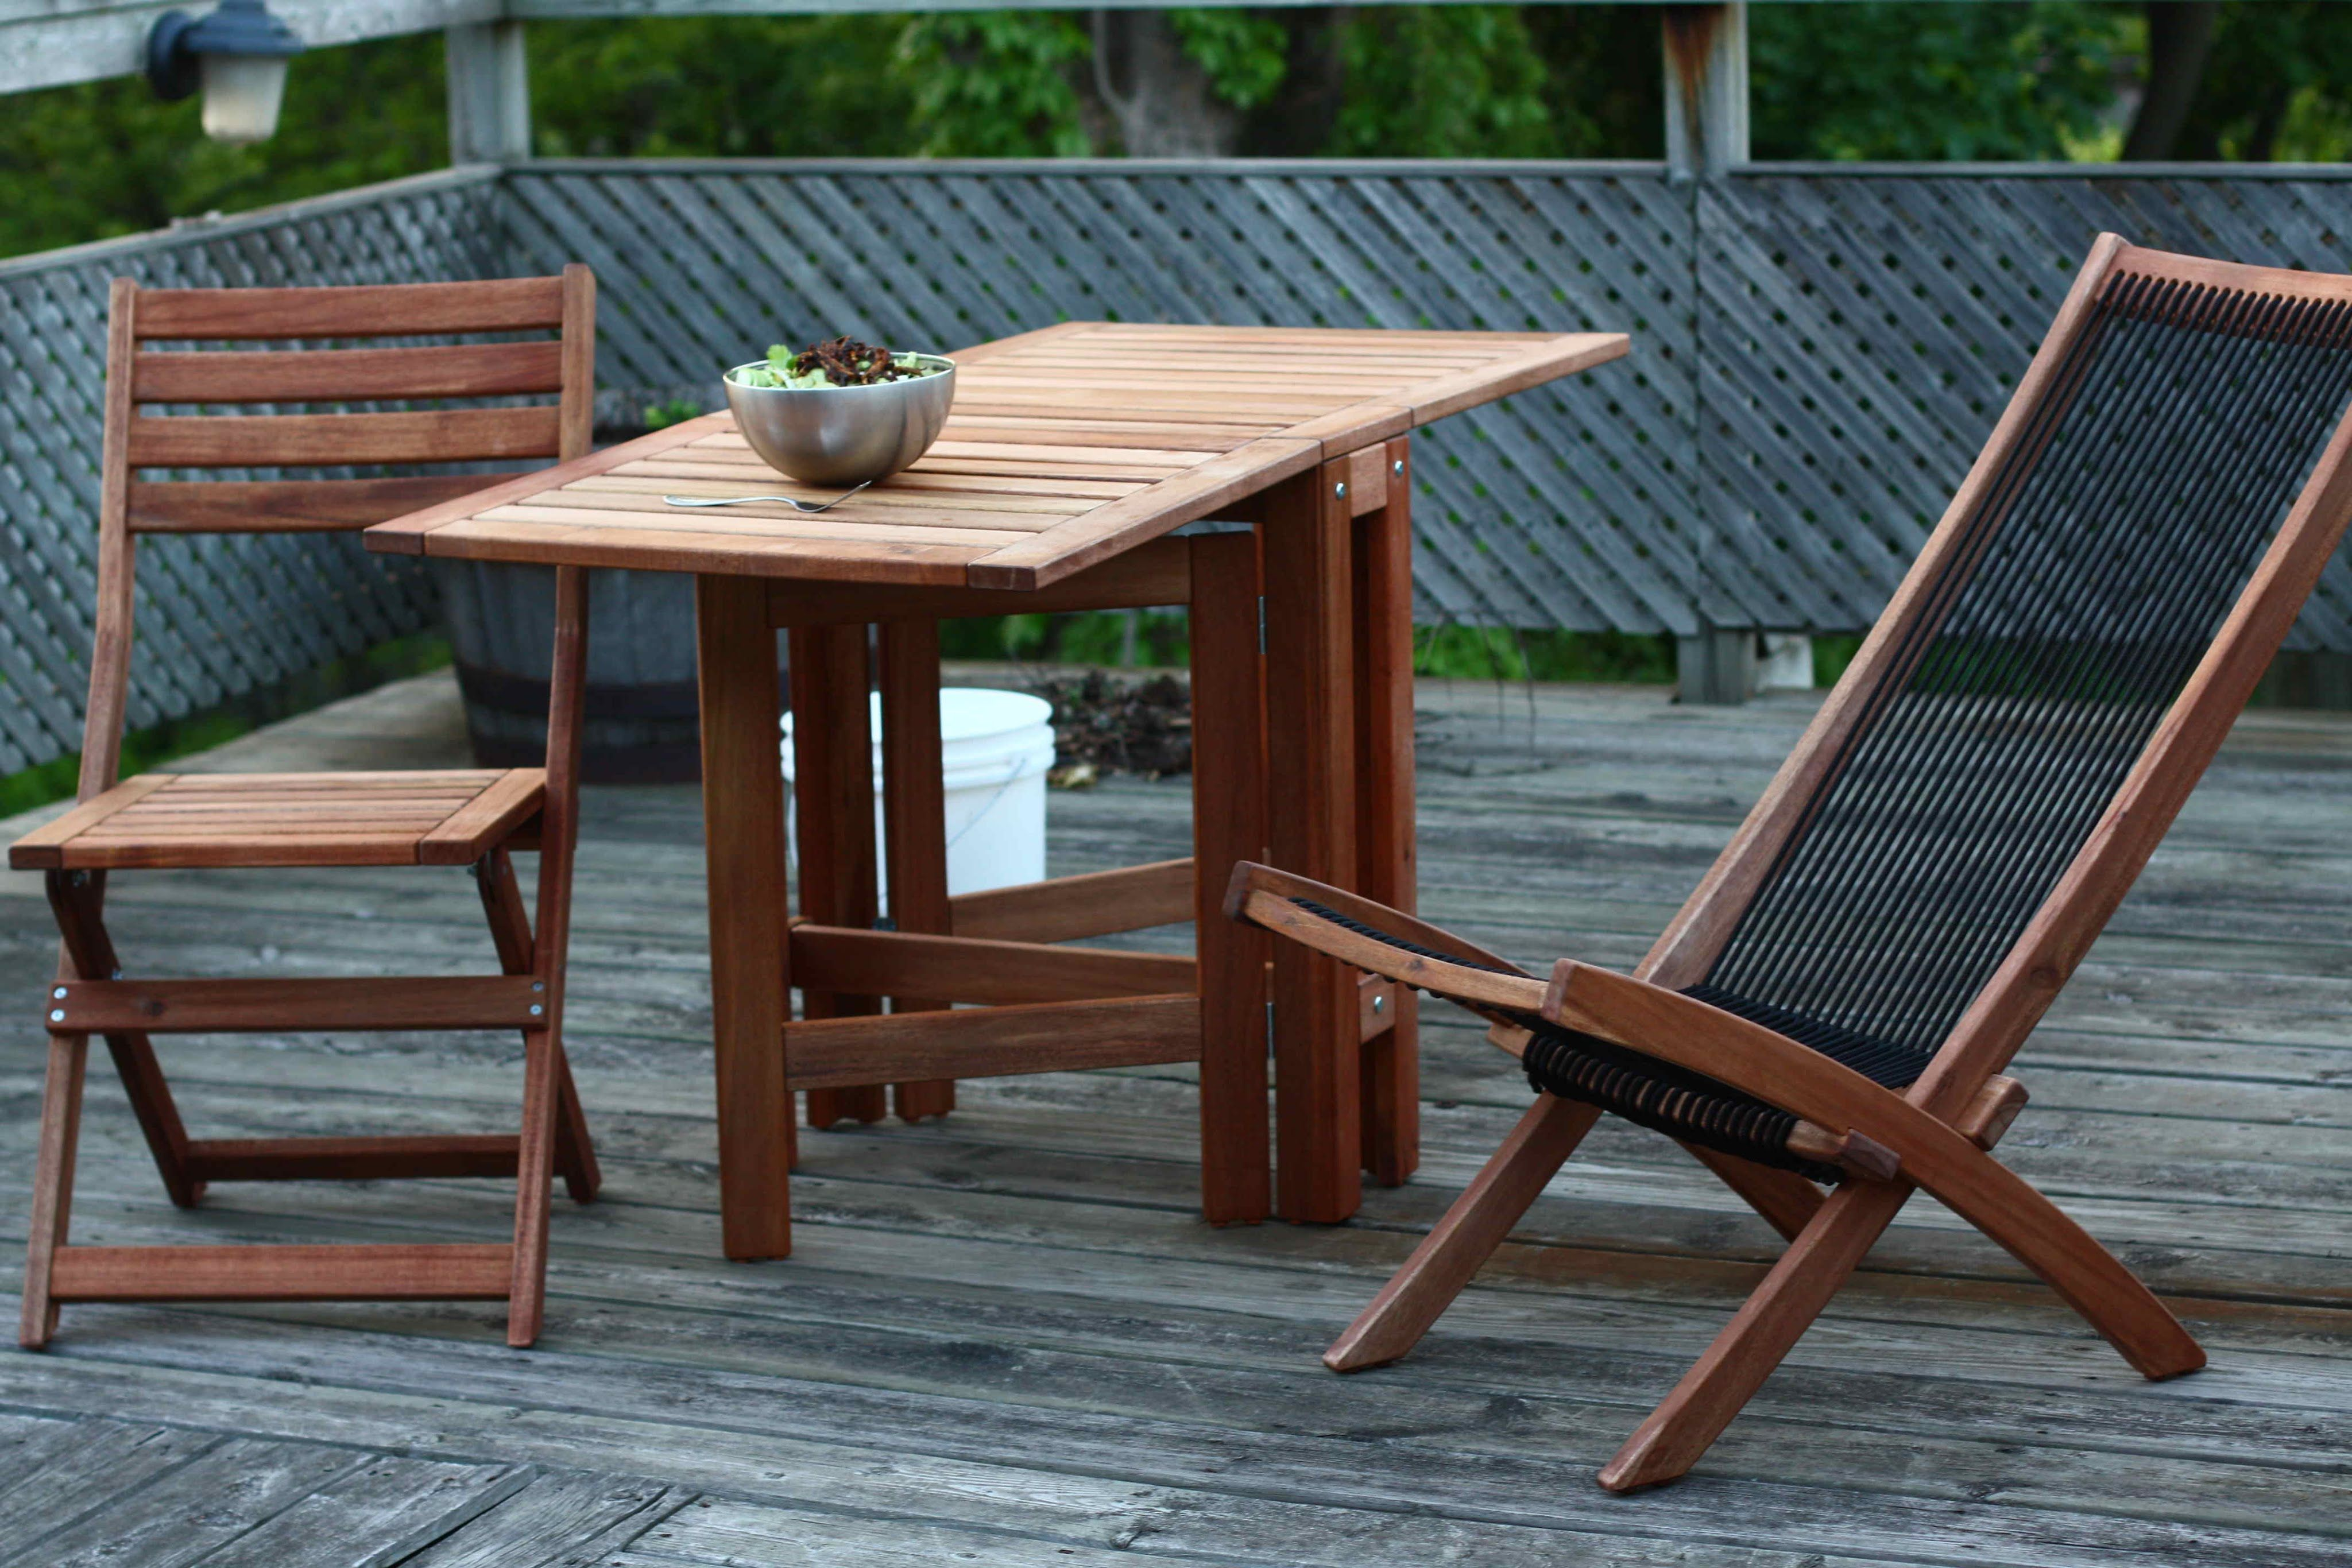 Ikea Outdoor Tablesikea Outdoor Tables And Chairs Youtube Roof